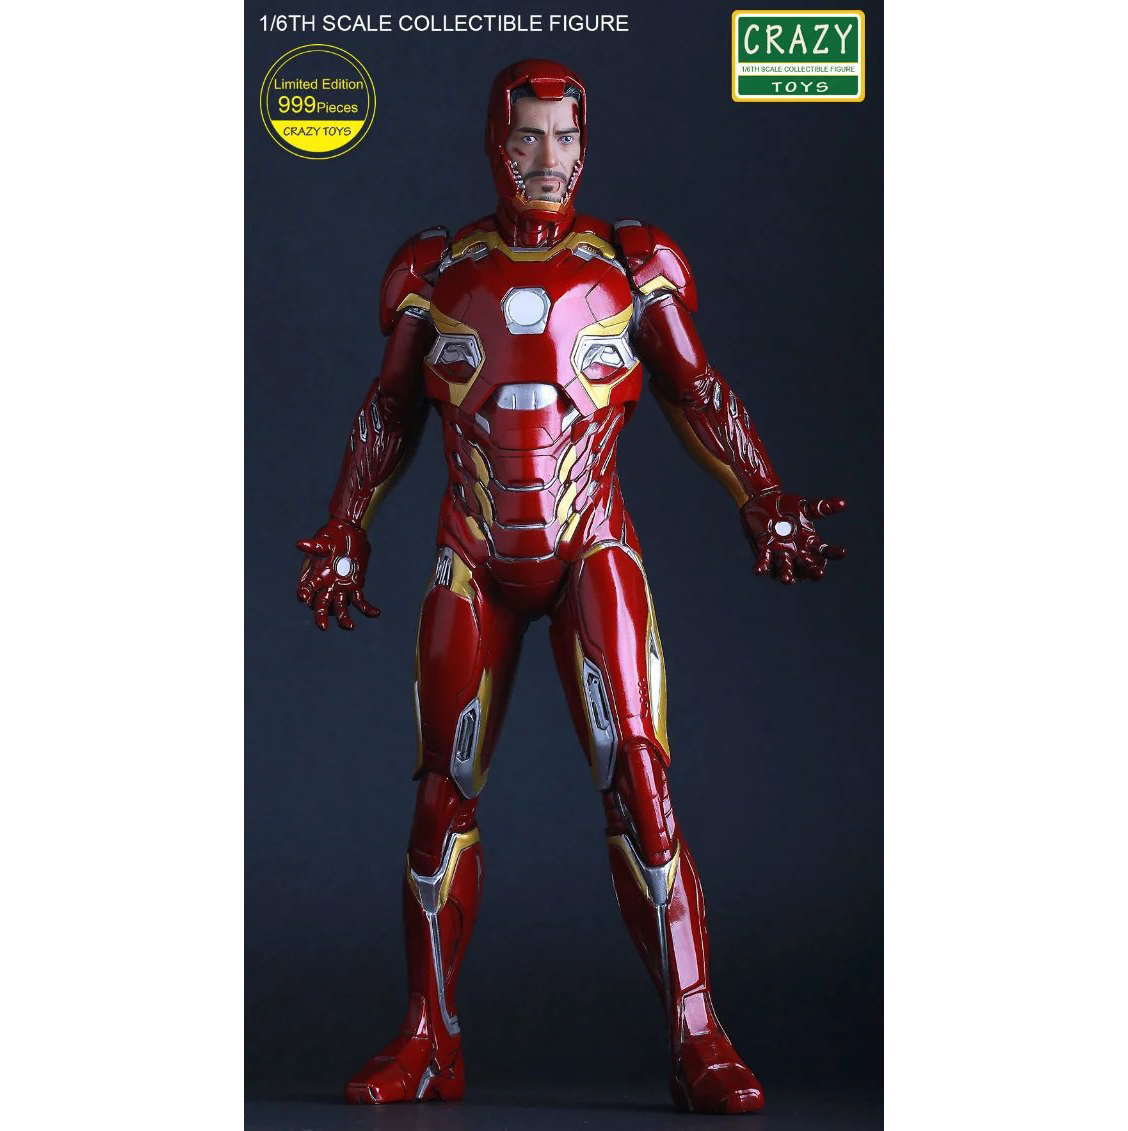 XINDUPLAN Marvel Shield iron Man Avengers Age of Ultron MK45 Limited Edition human face Movable Action Figure 30cm Model 0778 xinduplan marvel shield play arts movie avengers spider man limited edition blue action figure toys 26cm collection model 0494